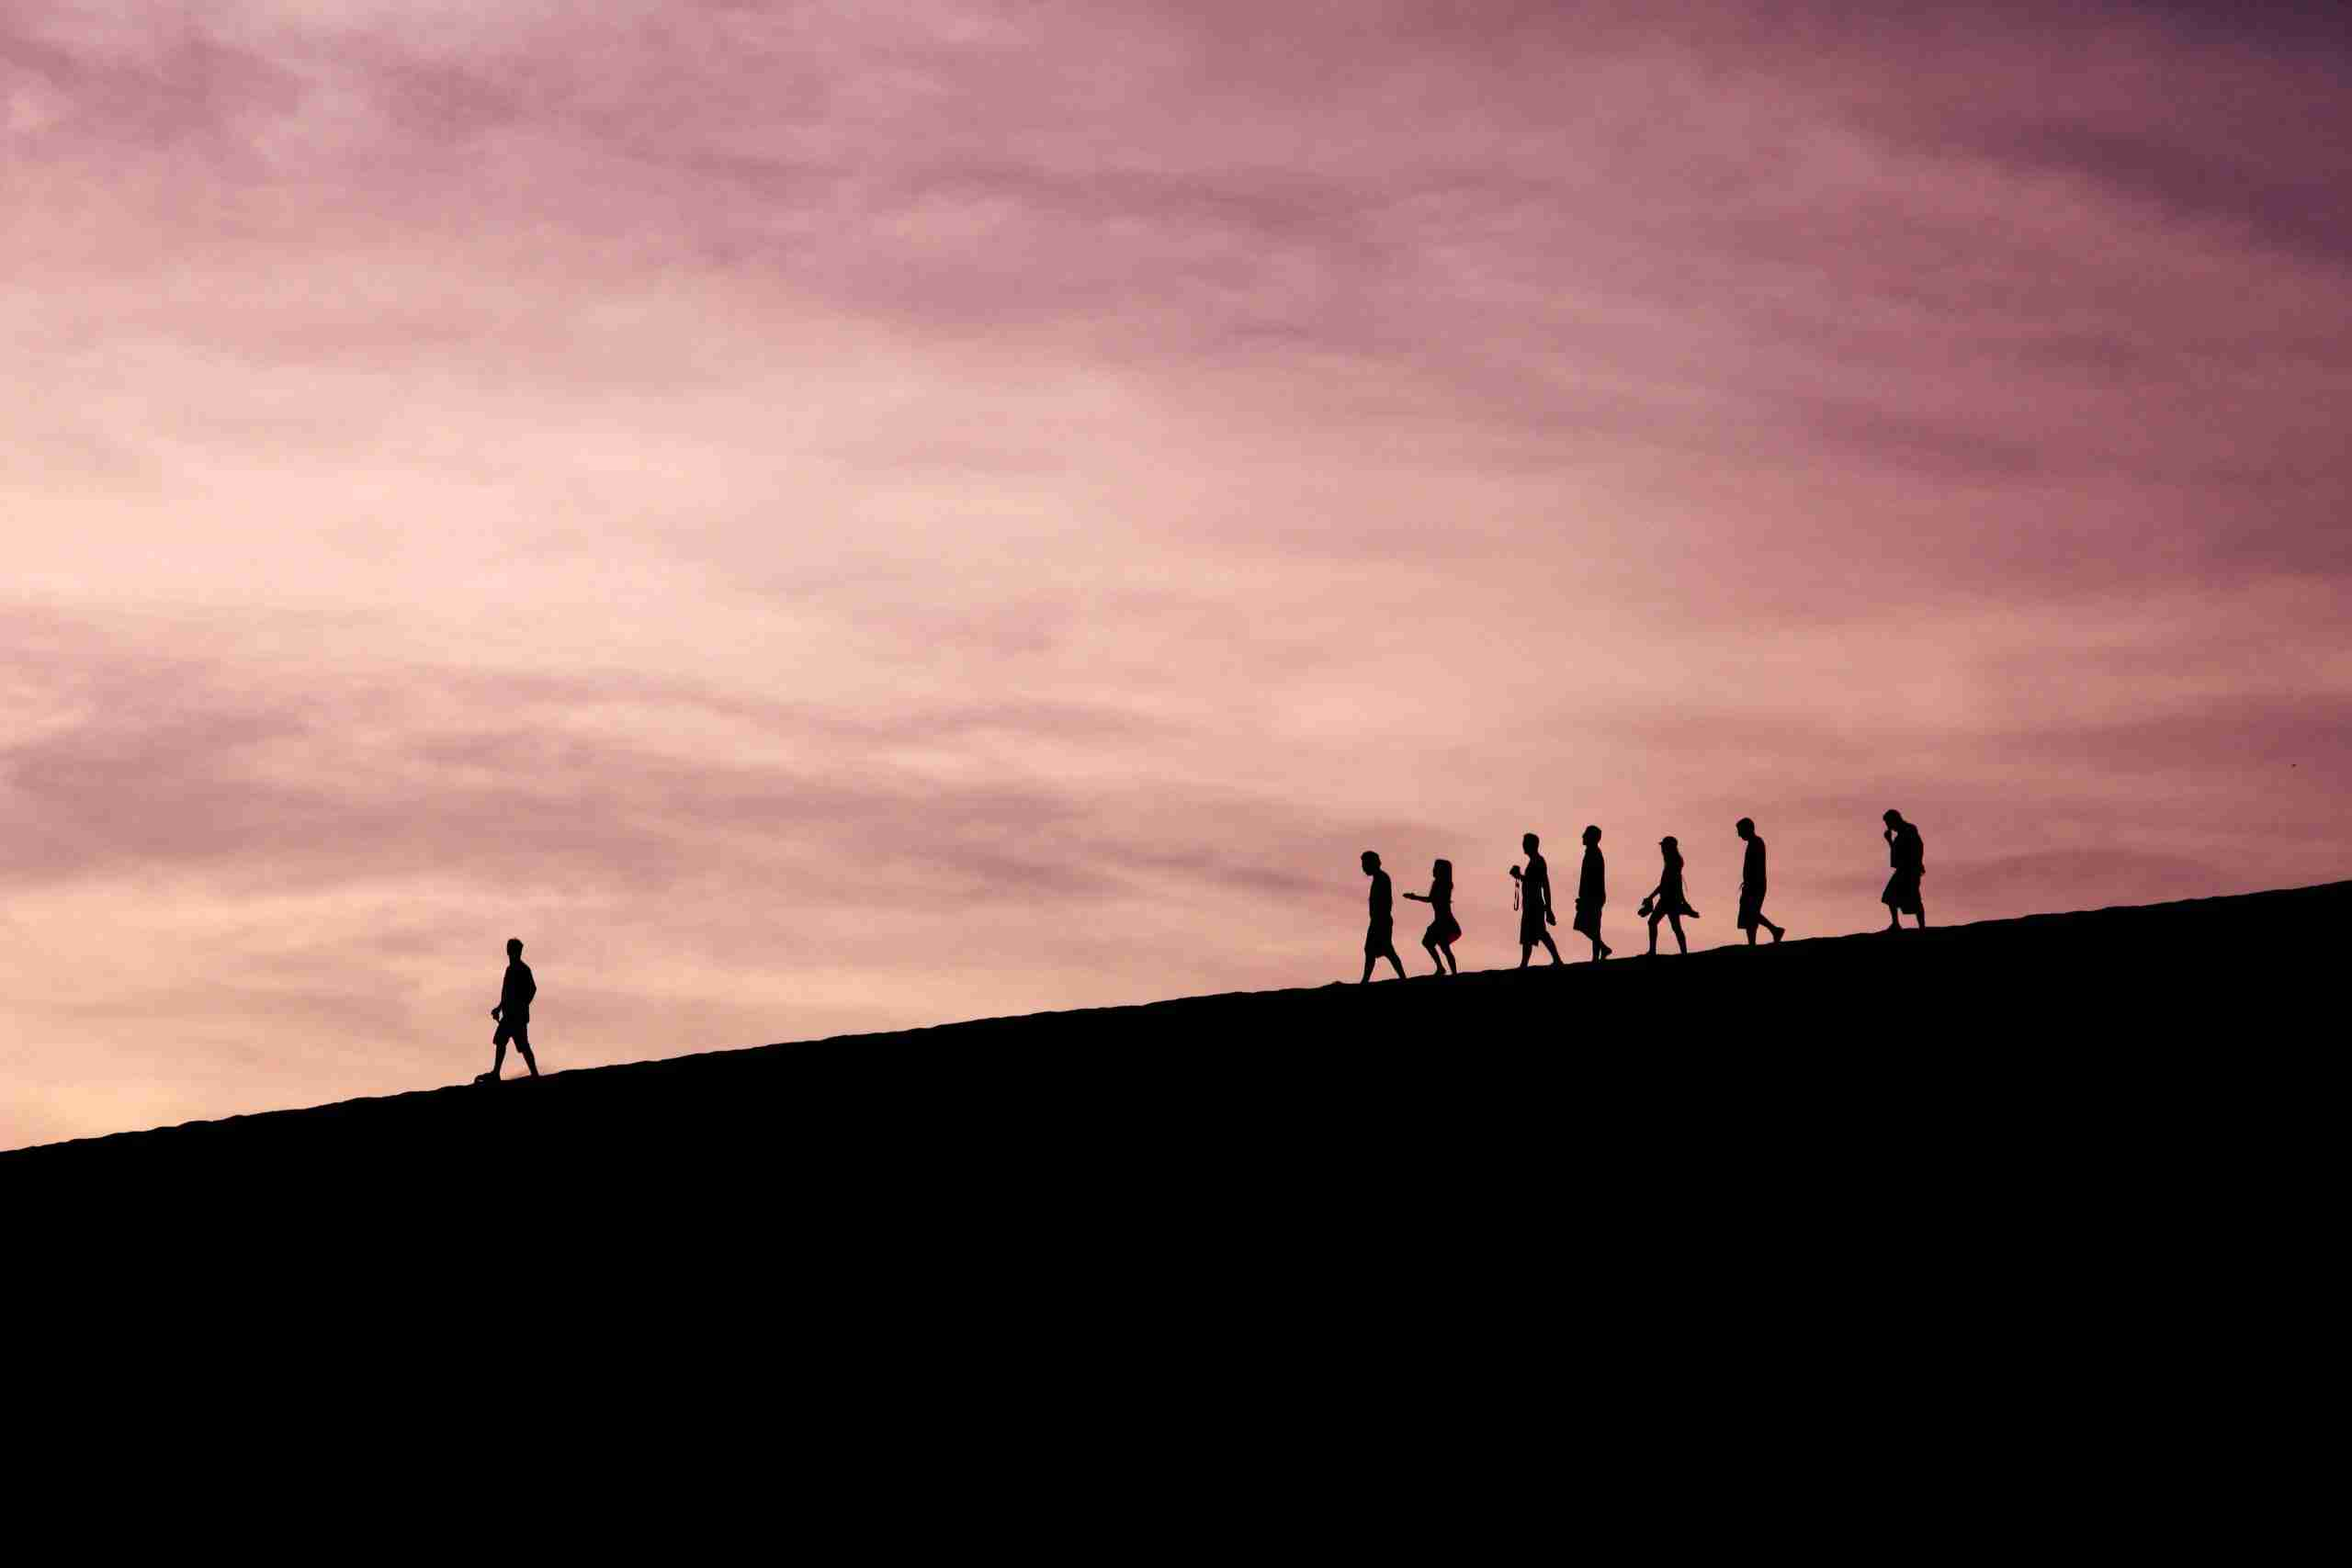 This picture of one person walking in the lead, with a group of people following behind conveys the importance of leadership in both the crafting and implementing of an innovation strategy and culture of innovation